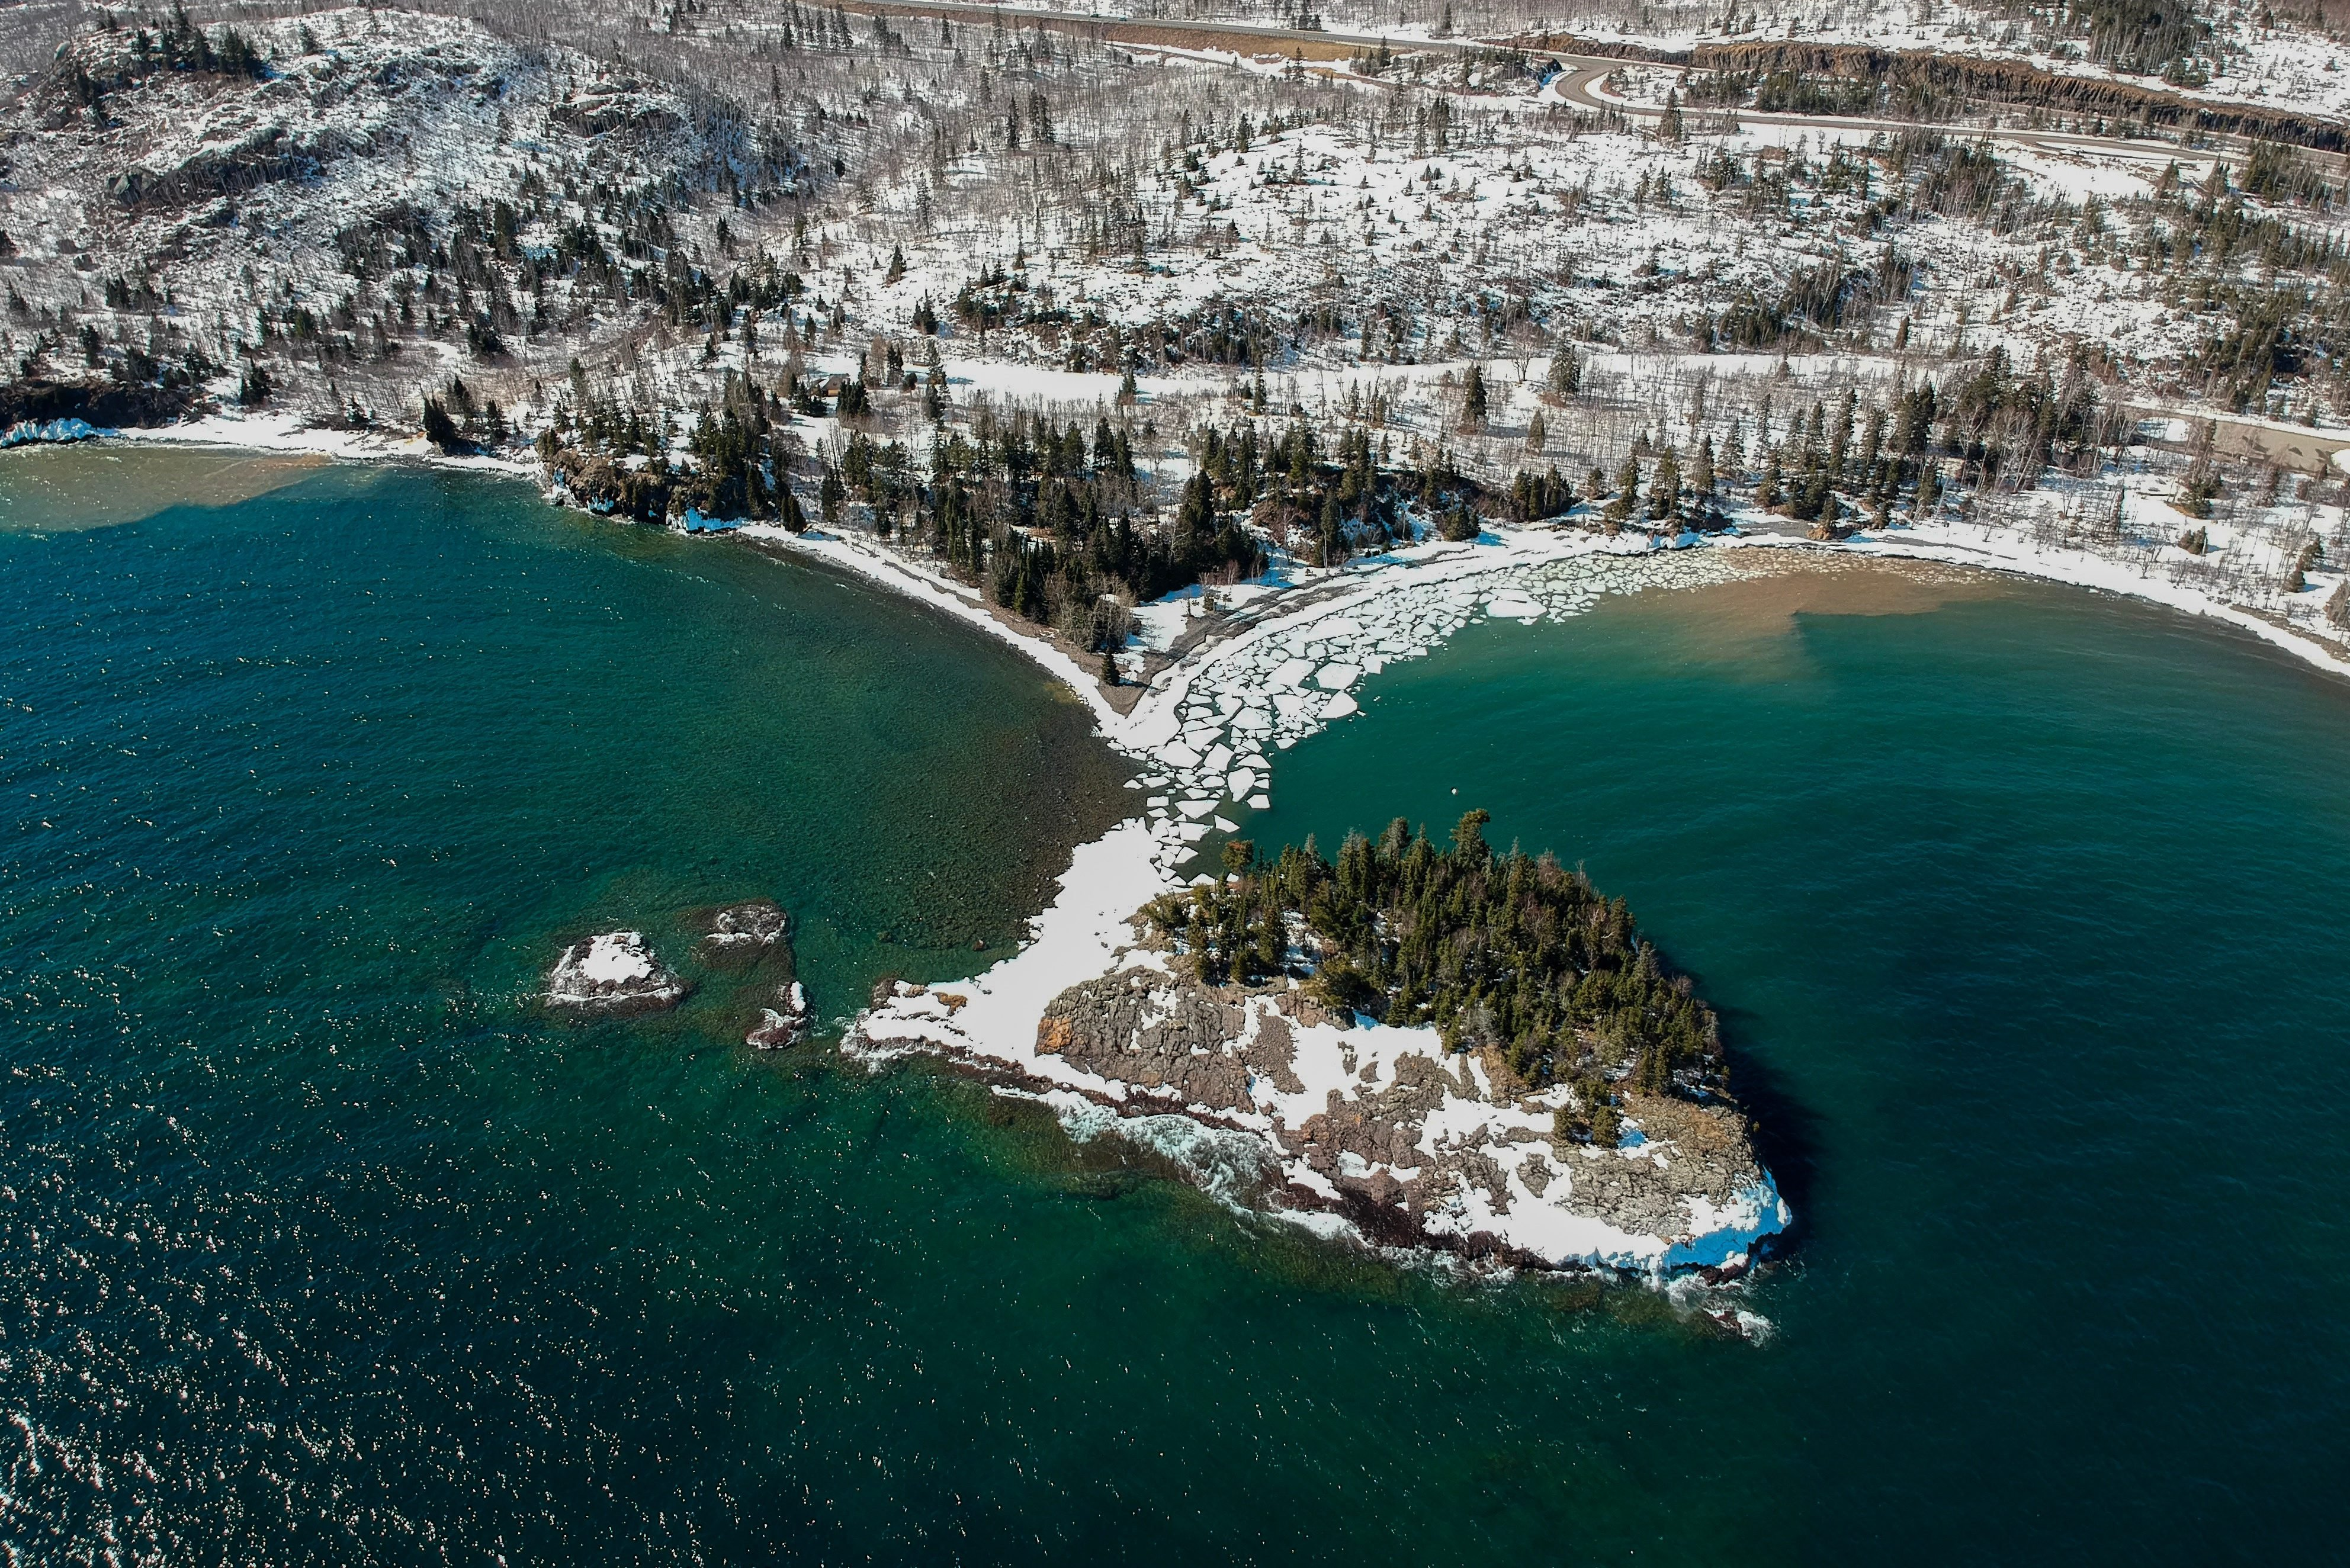 Aerial shot of island in northern Minnesota on Lake Superior